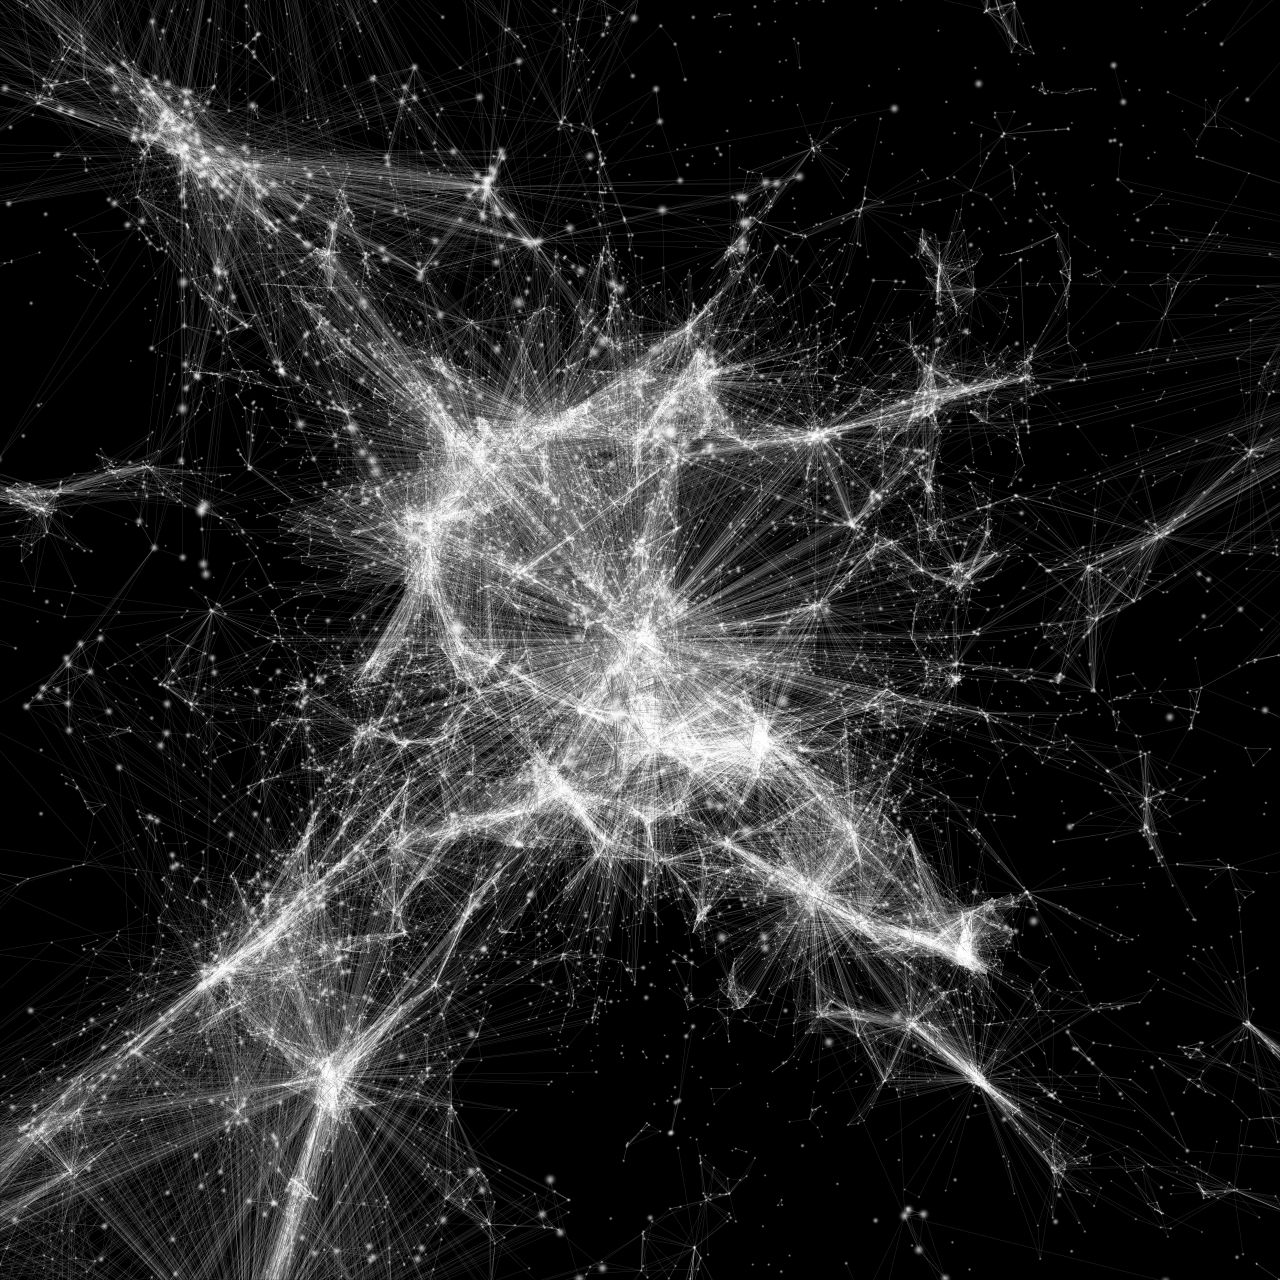 A visualization of a network is shown. It looks like a spider web.